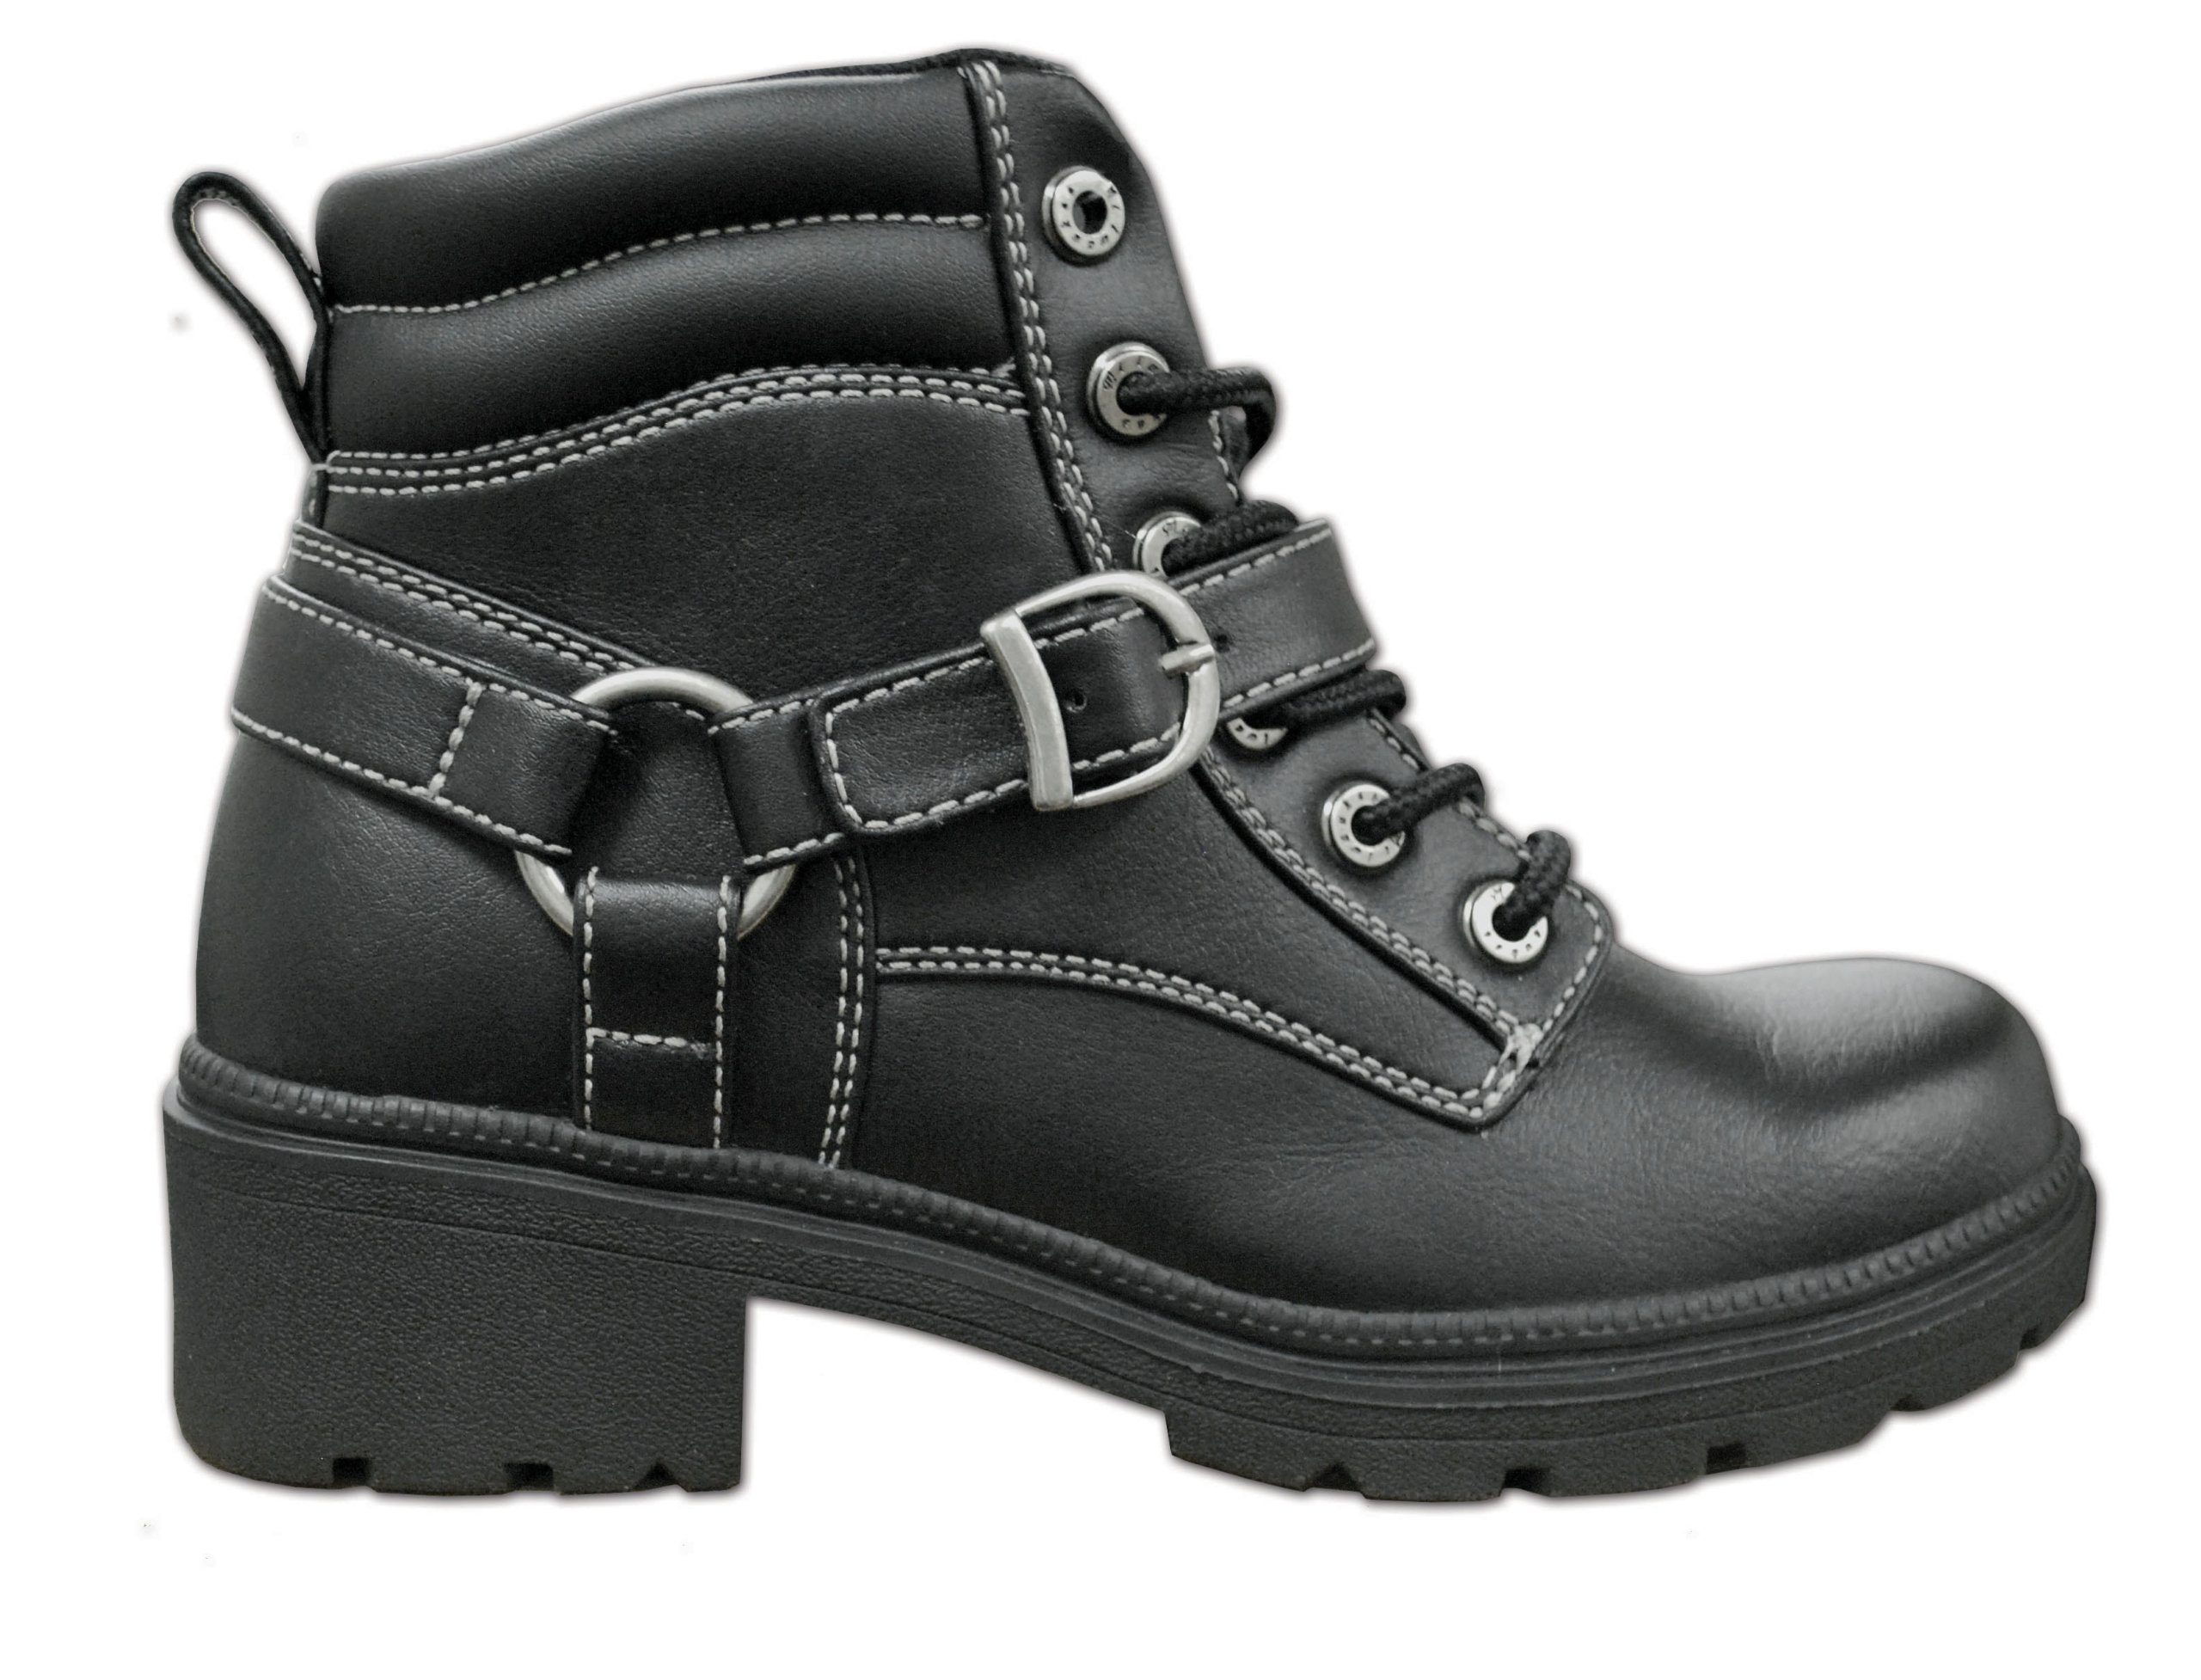 Milwaukee Motorcycle Clothing Company Womens Paragon Boots (Black, Size 8.5)